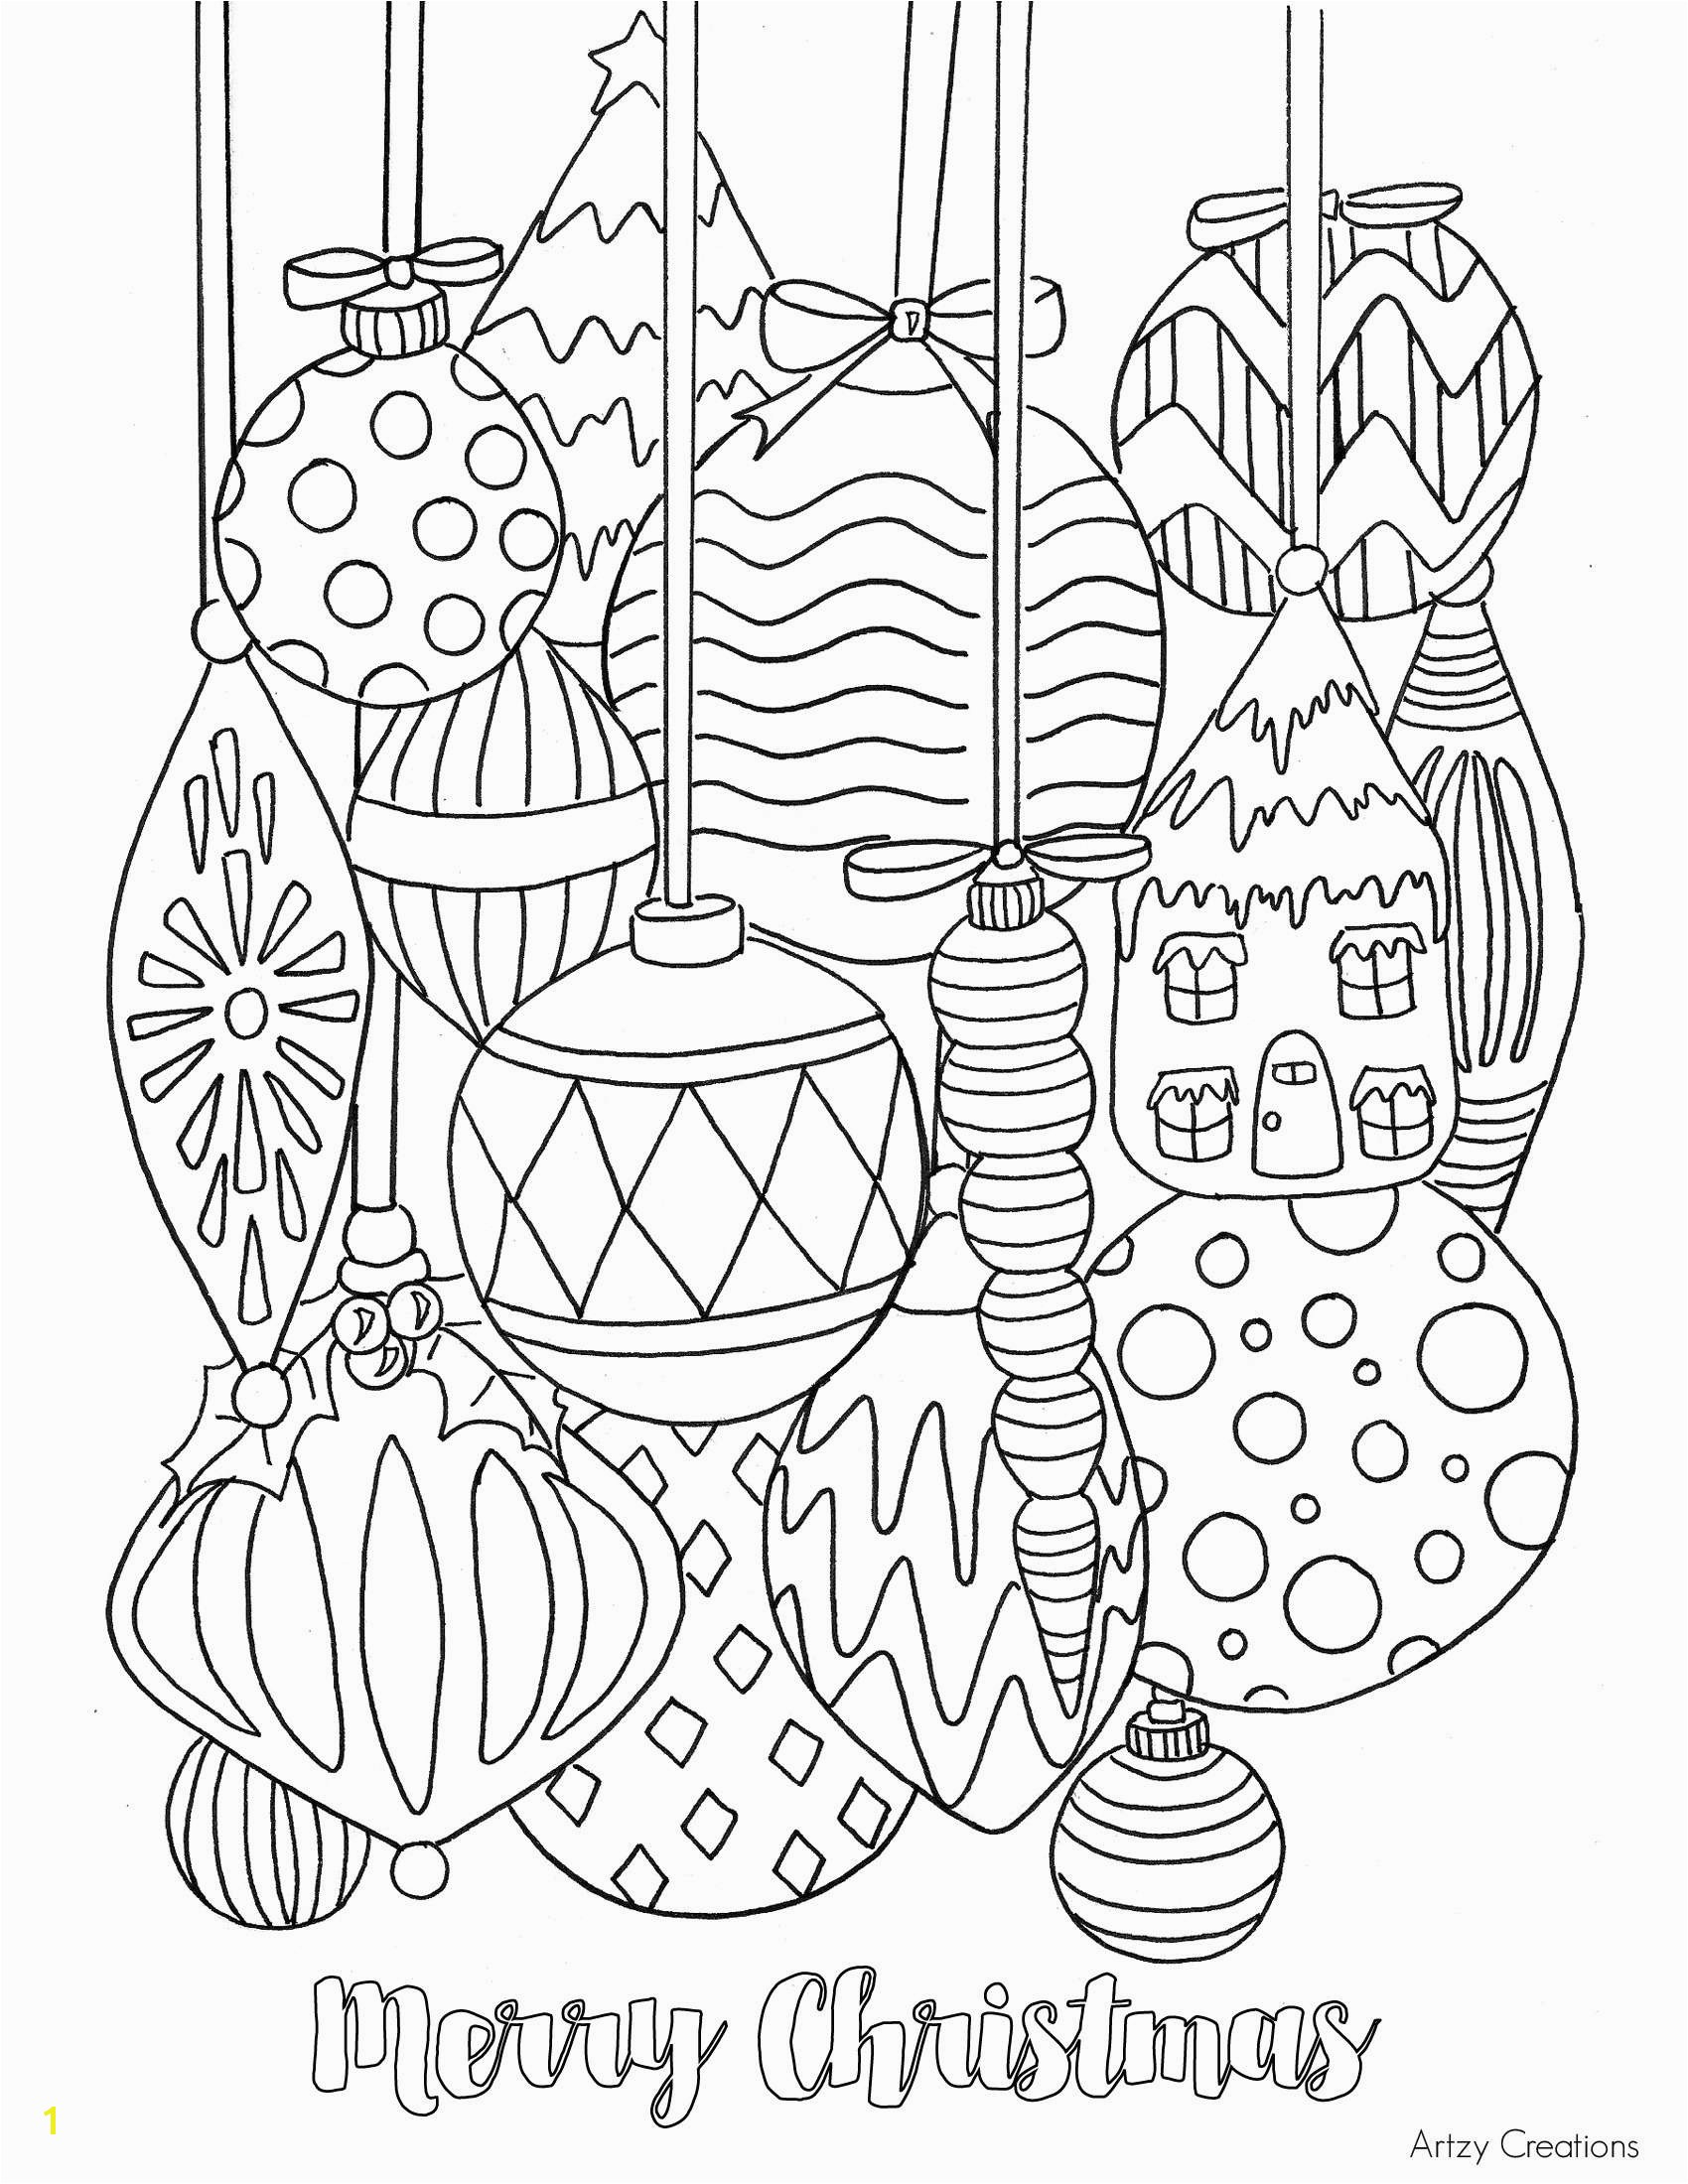 Christmas Coloring Pages Unique Cool Coloring Pages Printable New Printable Cds 0d Coloring Pages